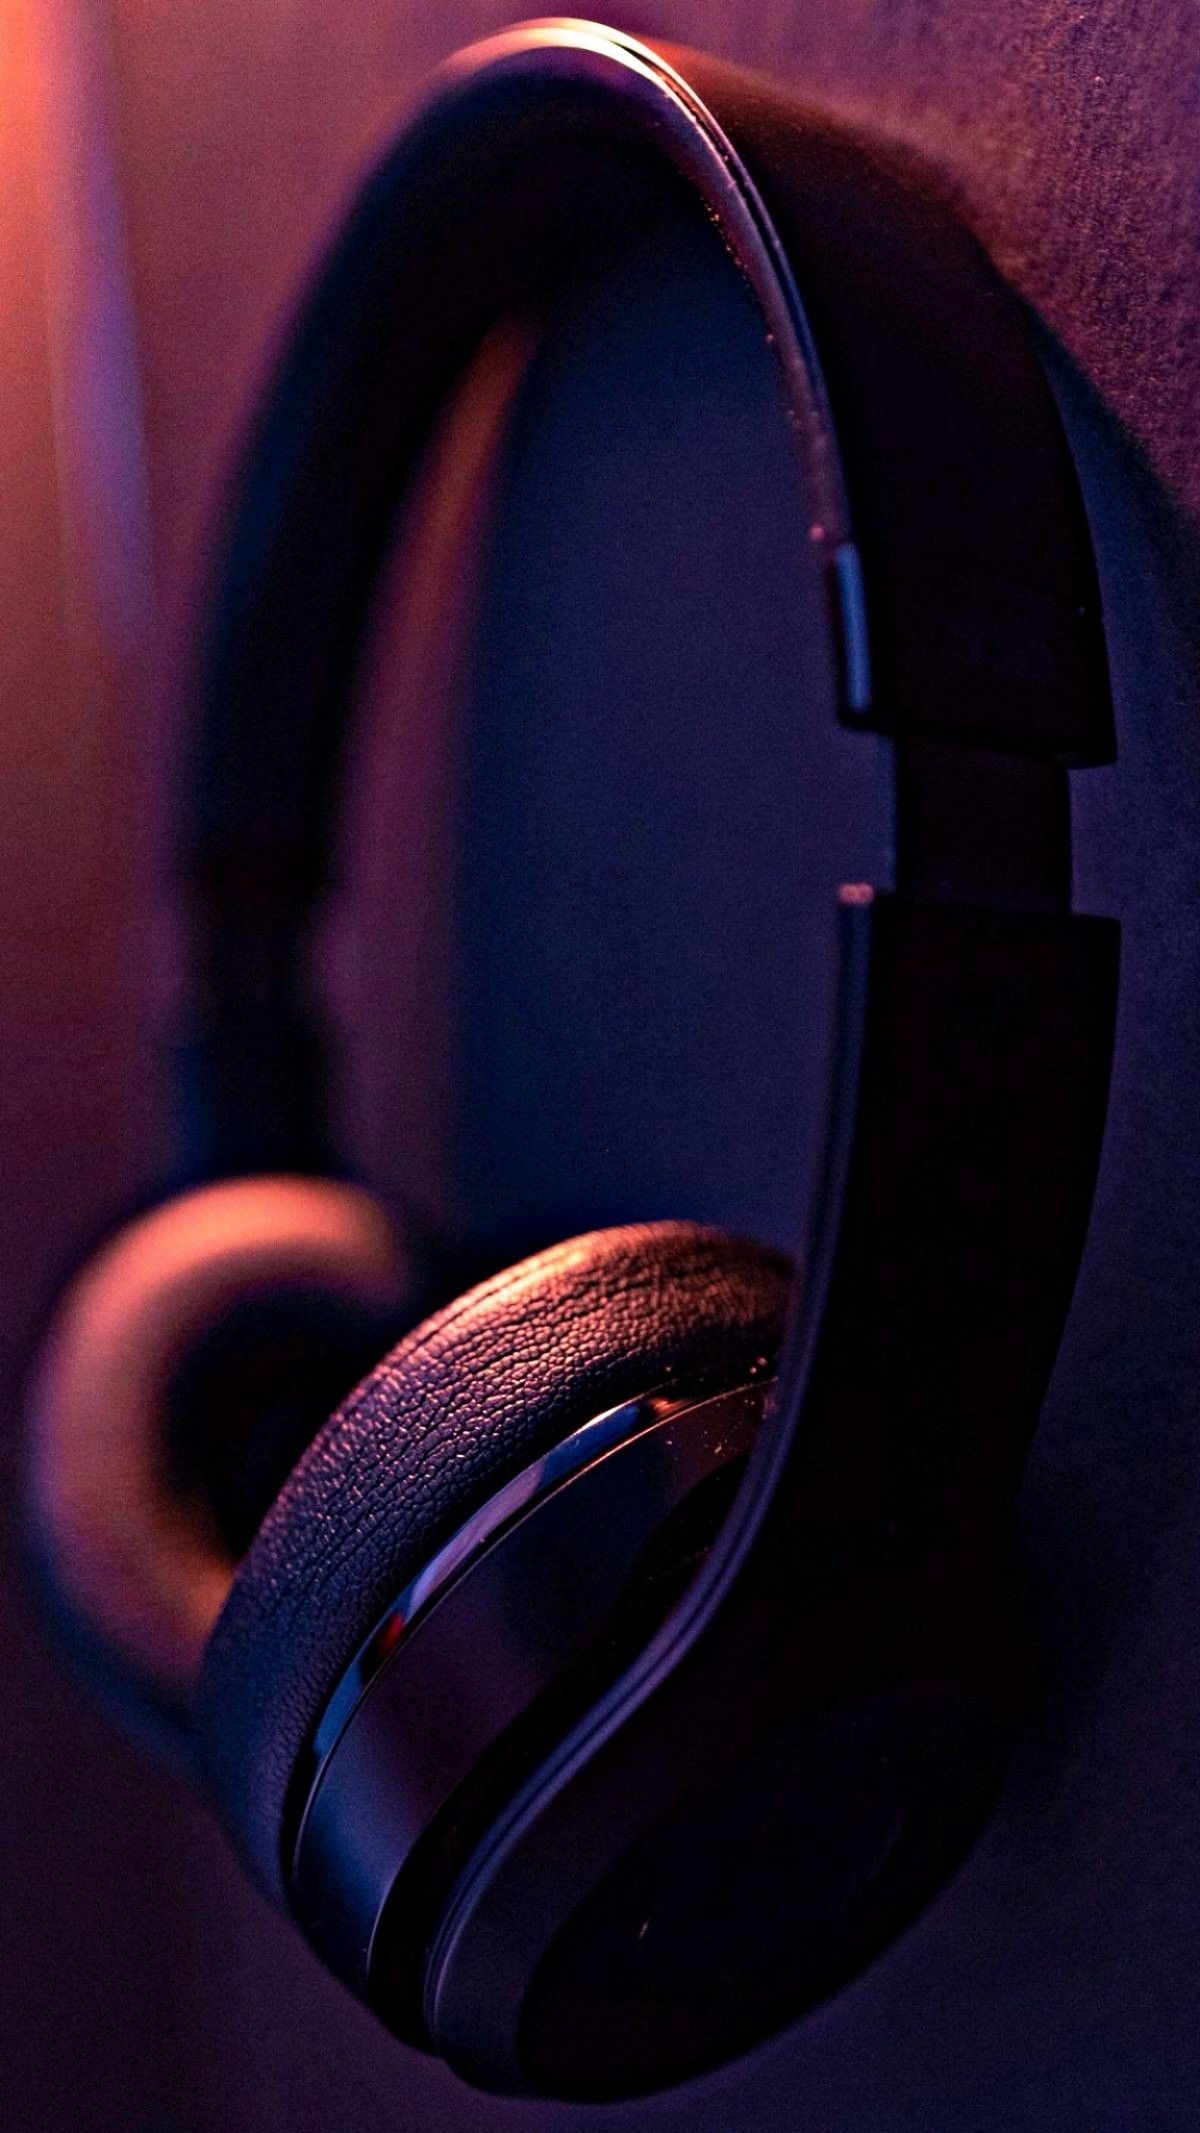 music is life hd wallpapers   Music wallpaper, Iphone wallpaper ...